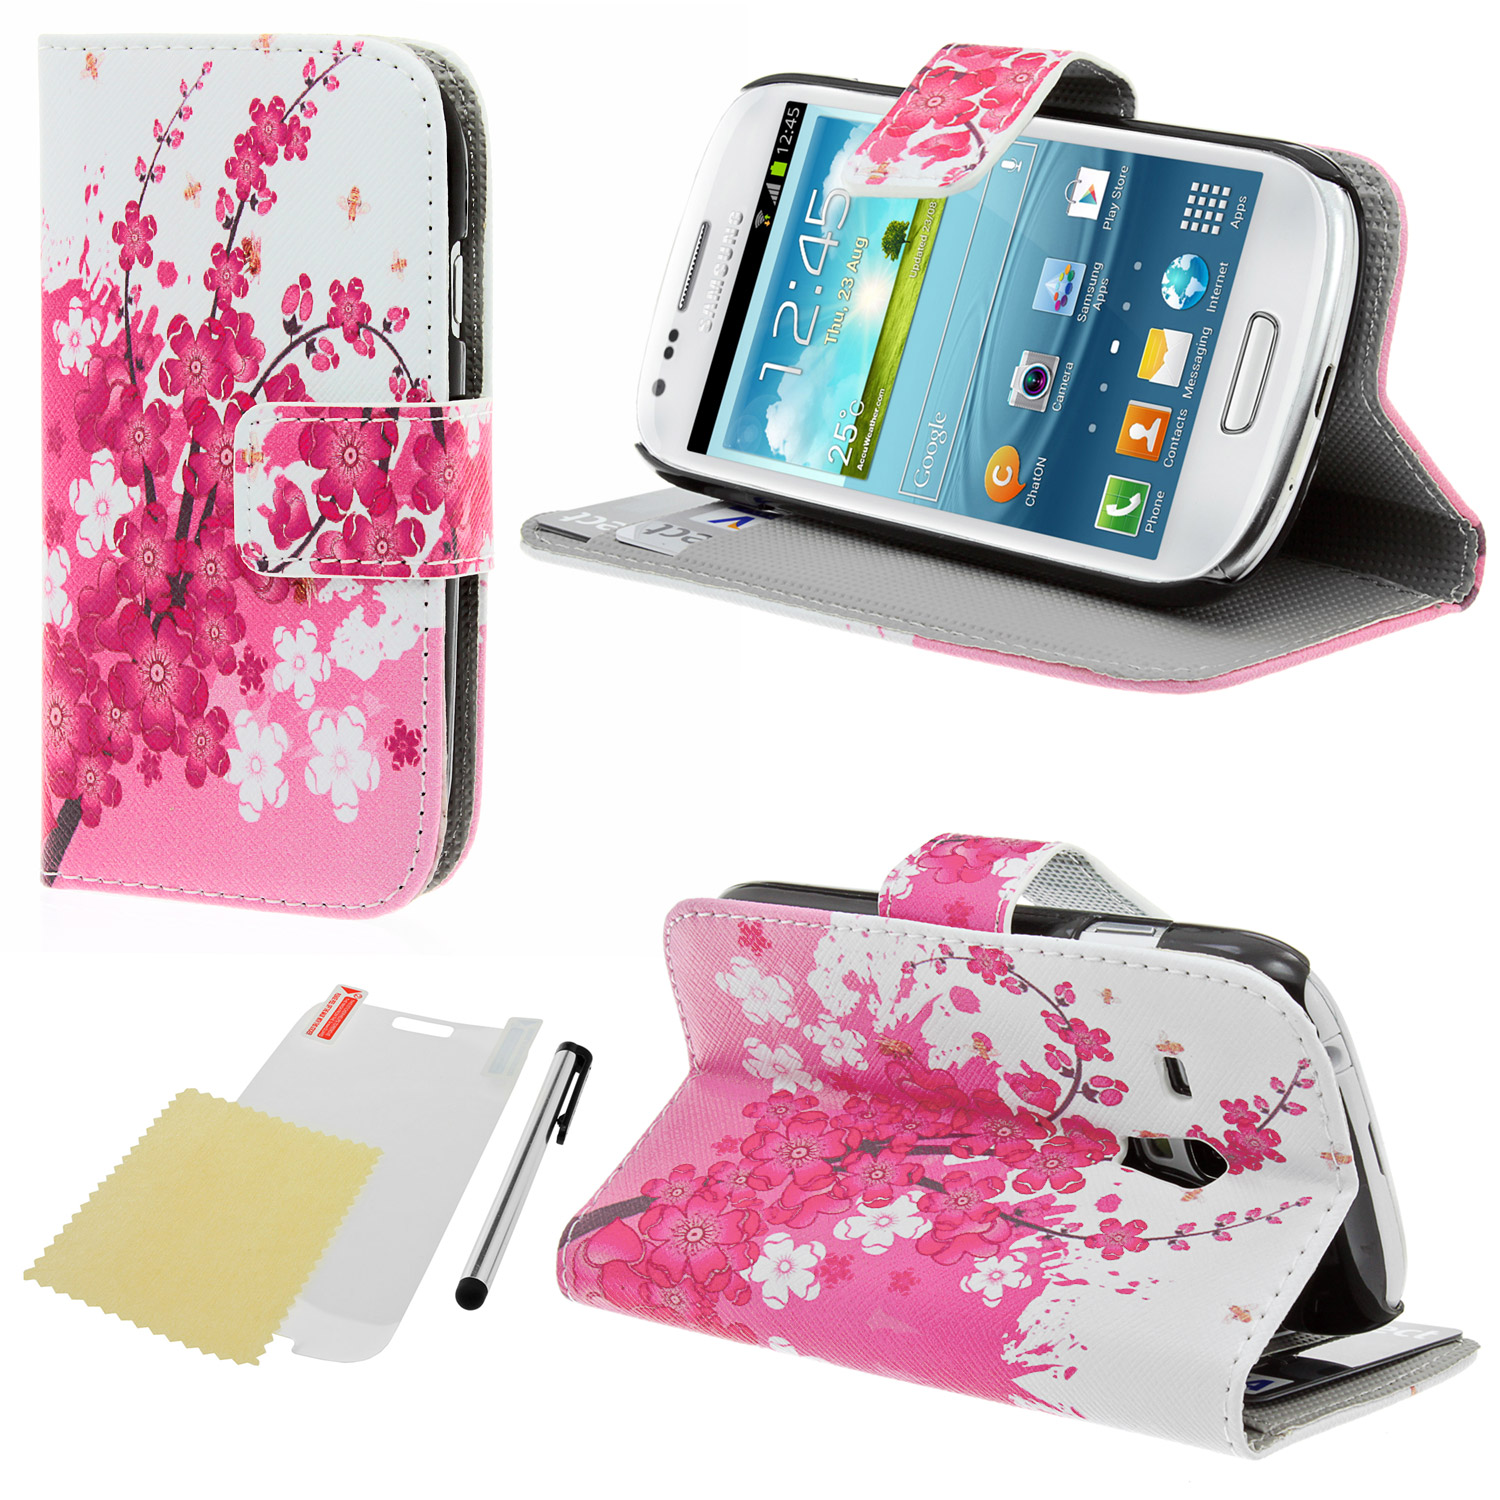 samsung galaxy s3 mini i8190 handyh lle wallet book style. Black Bedroom Furniture Sets. Home Design Ideas